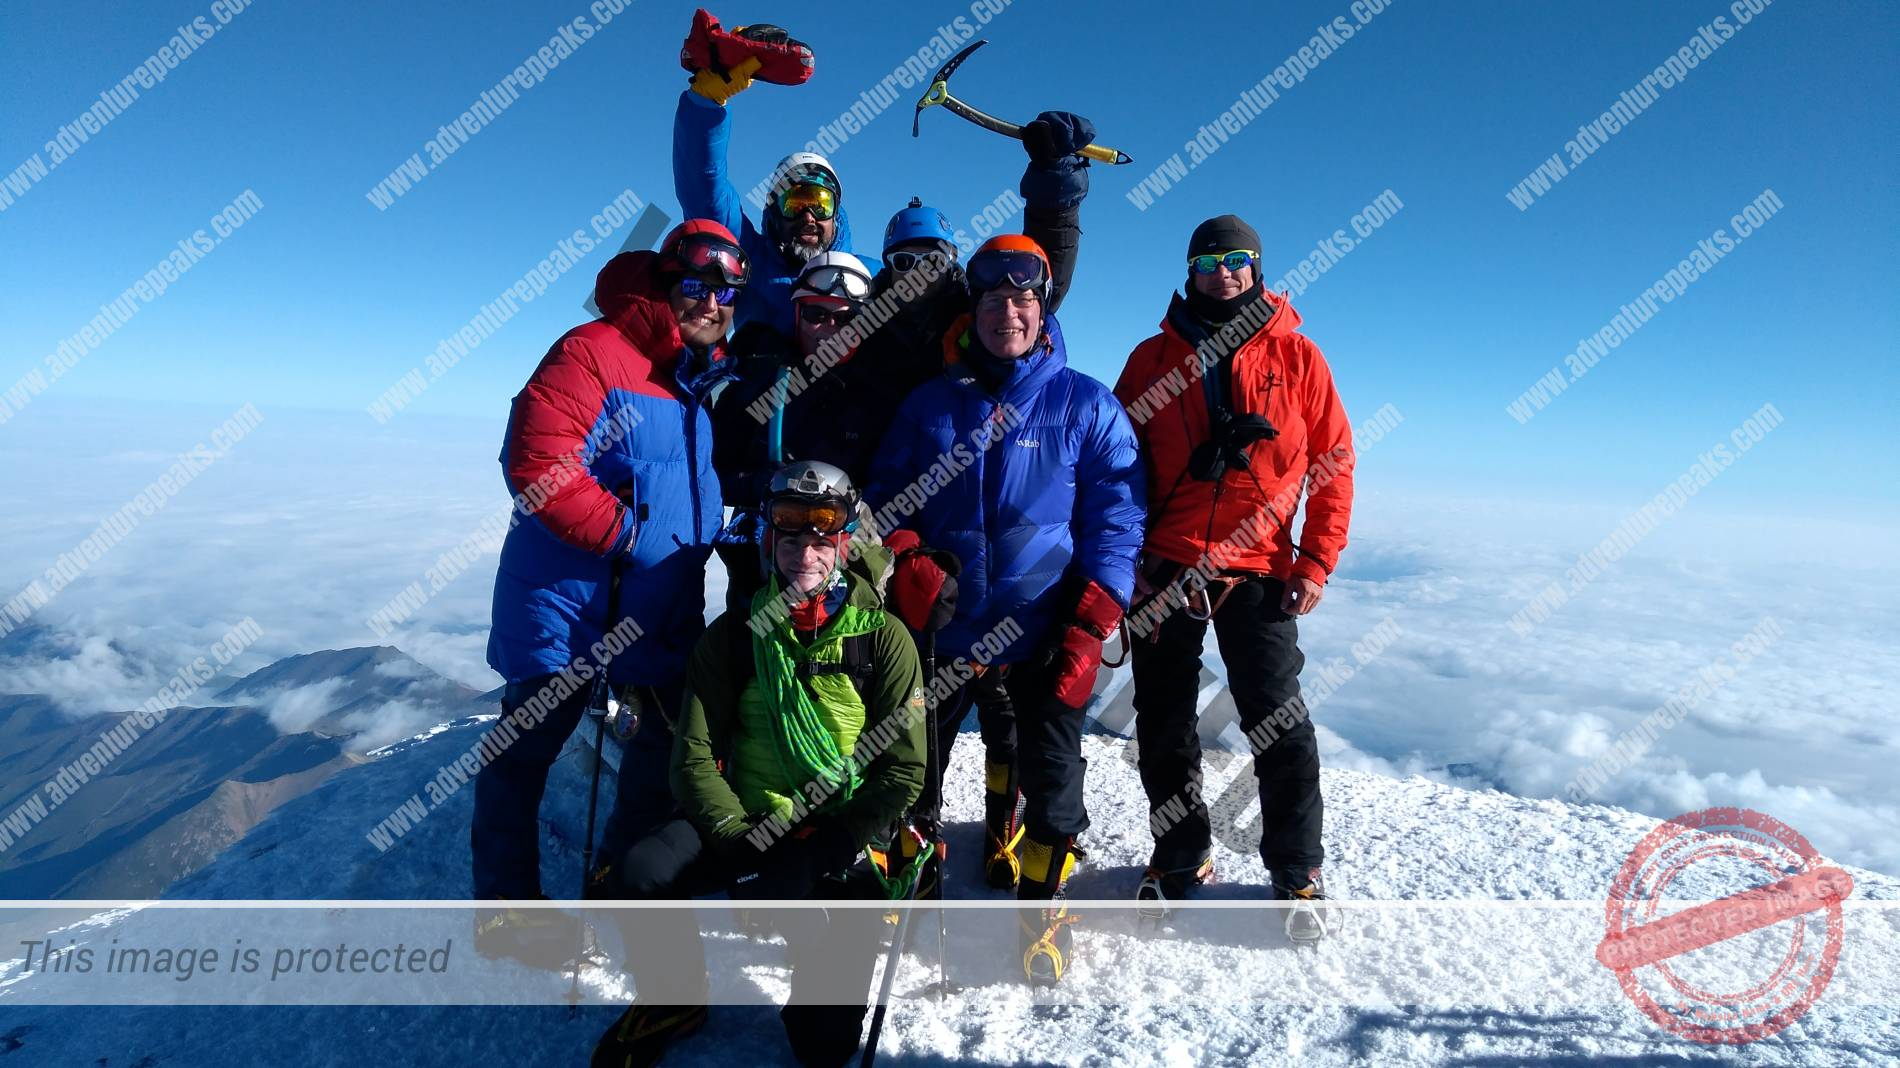 July 2019 Paul McCaffrey Elbrus South Summit day